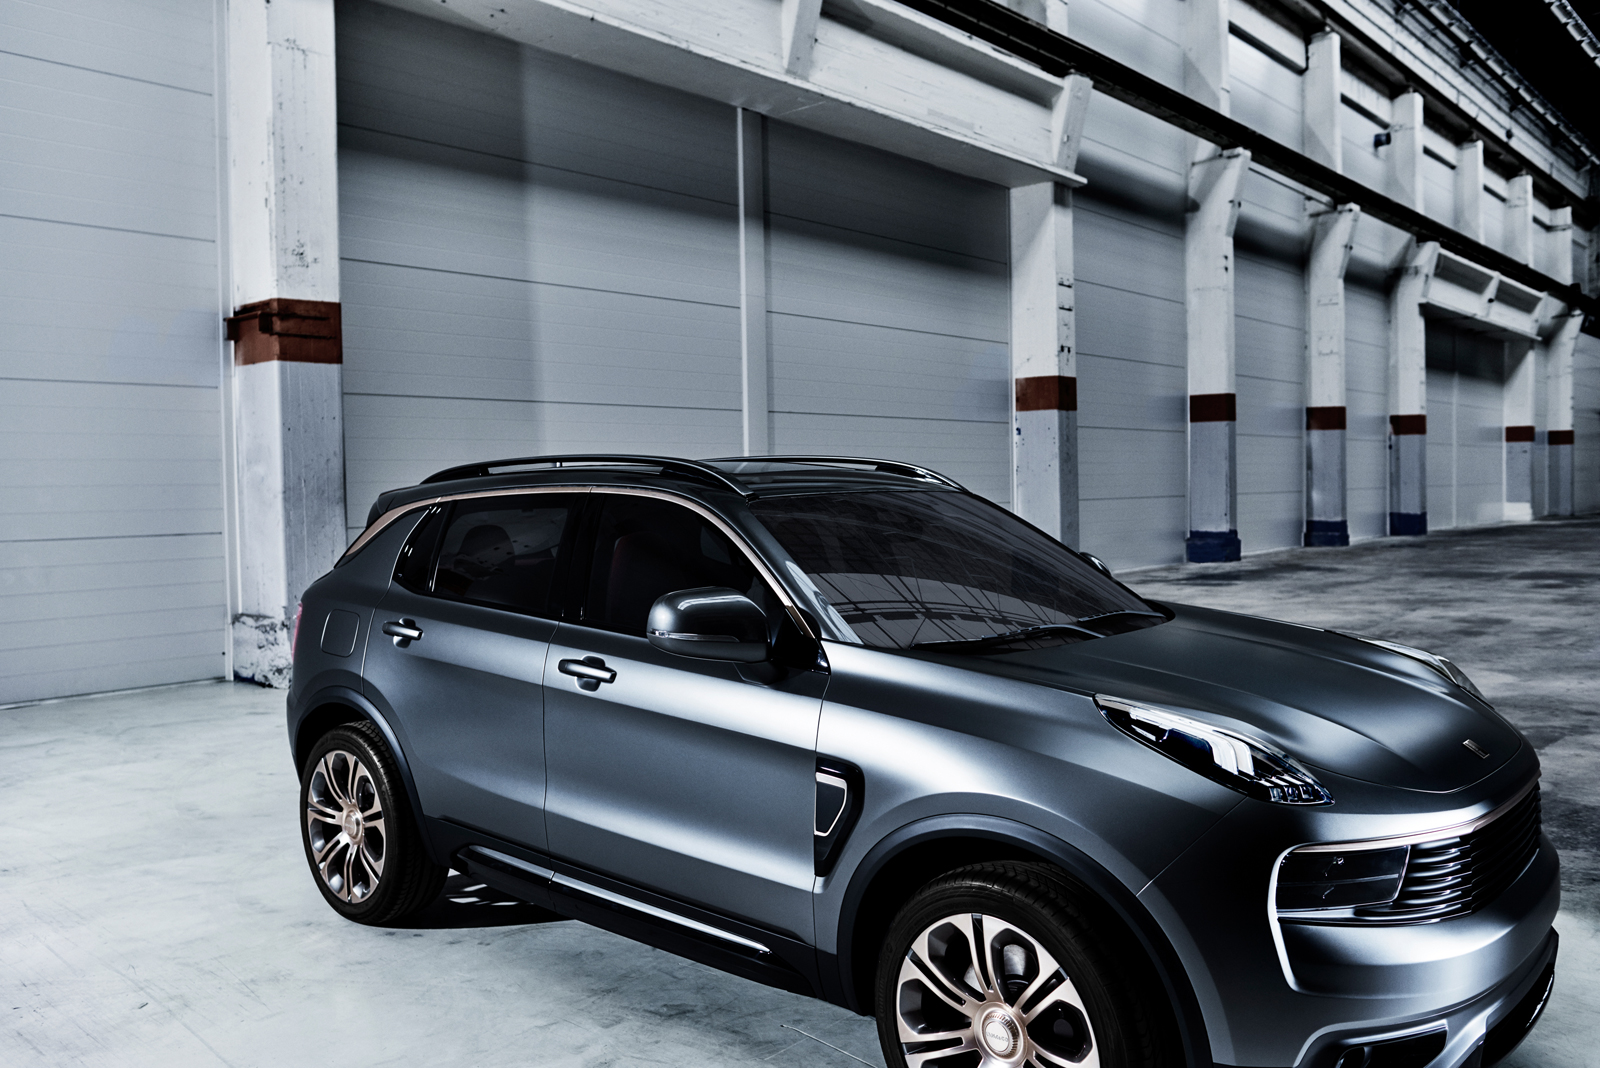 LYNK & CO, The Innovative Swedish Car Brand Looking To Change An Industry